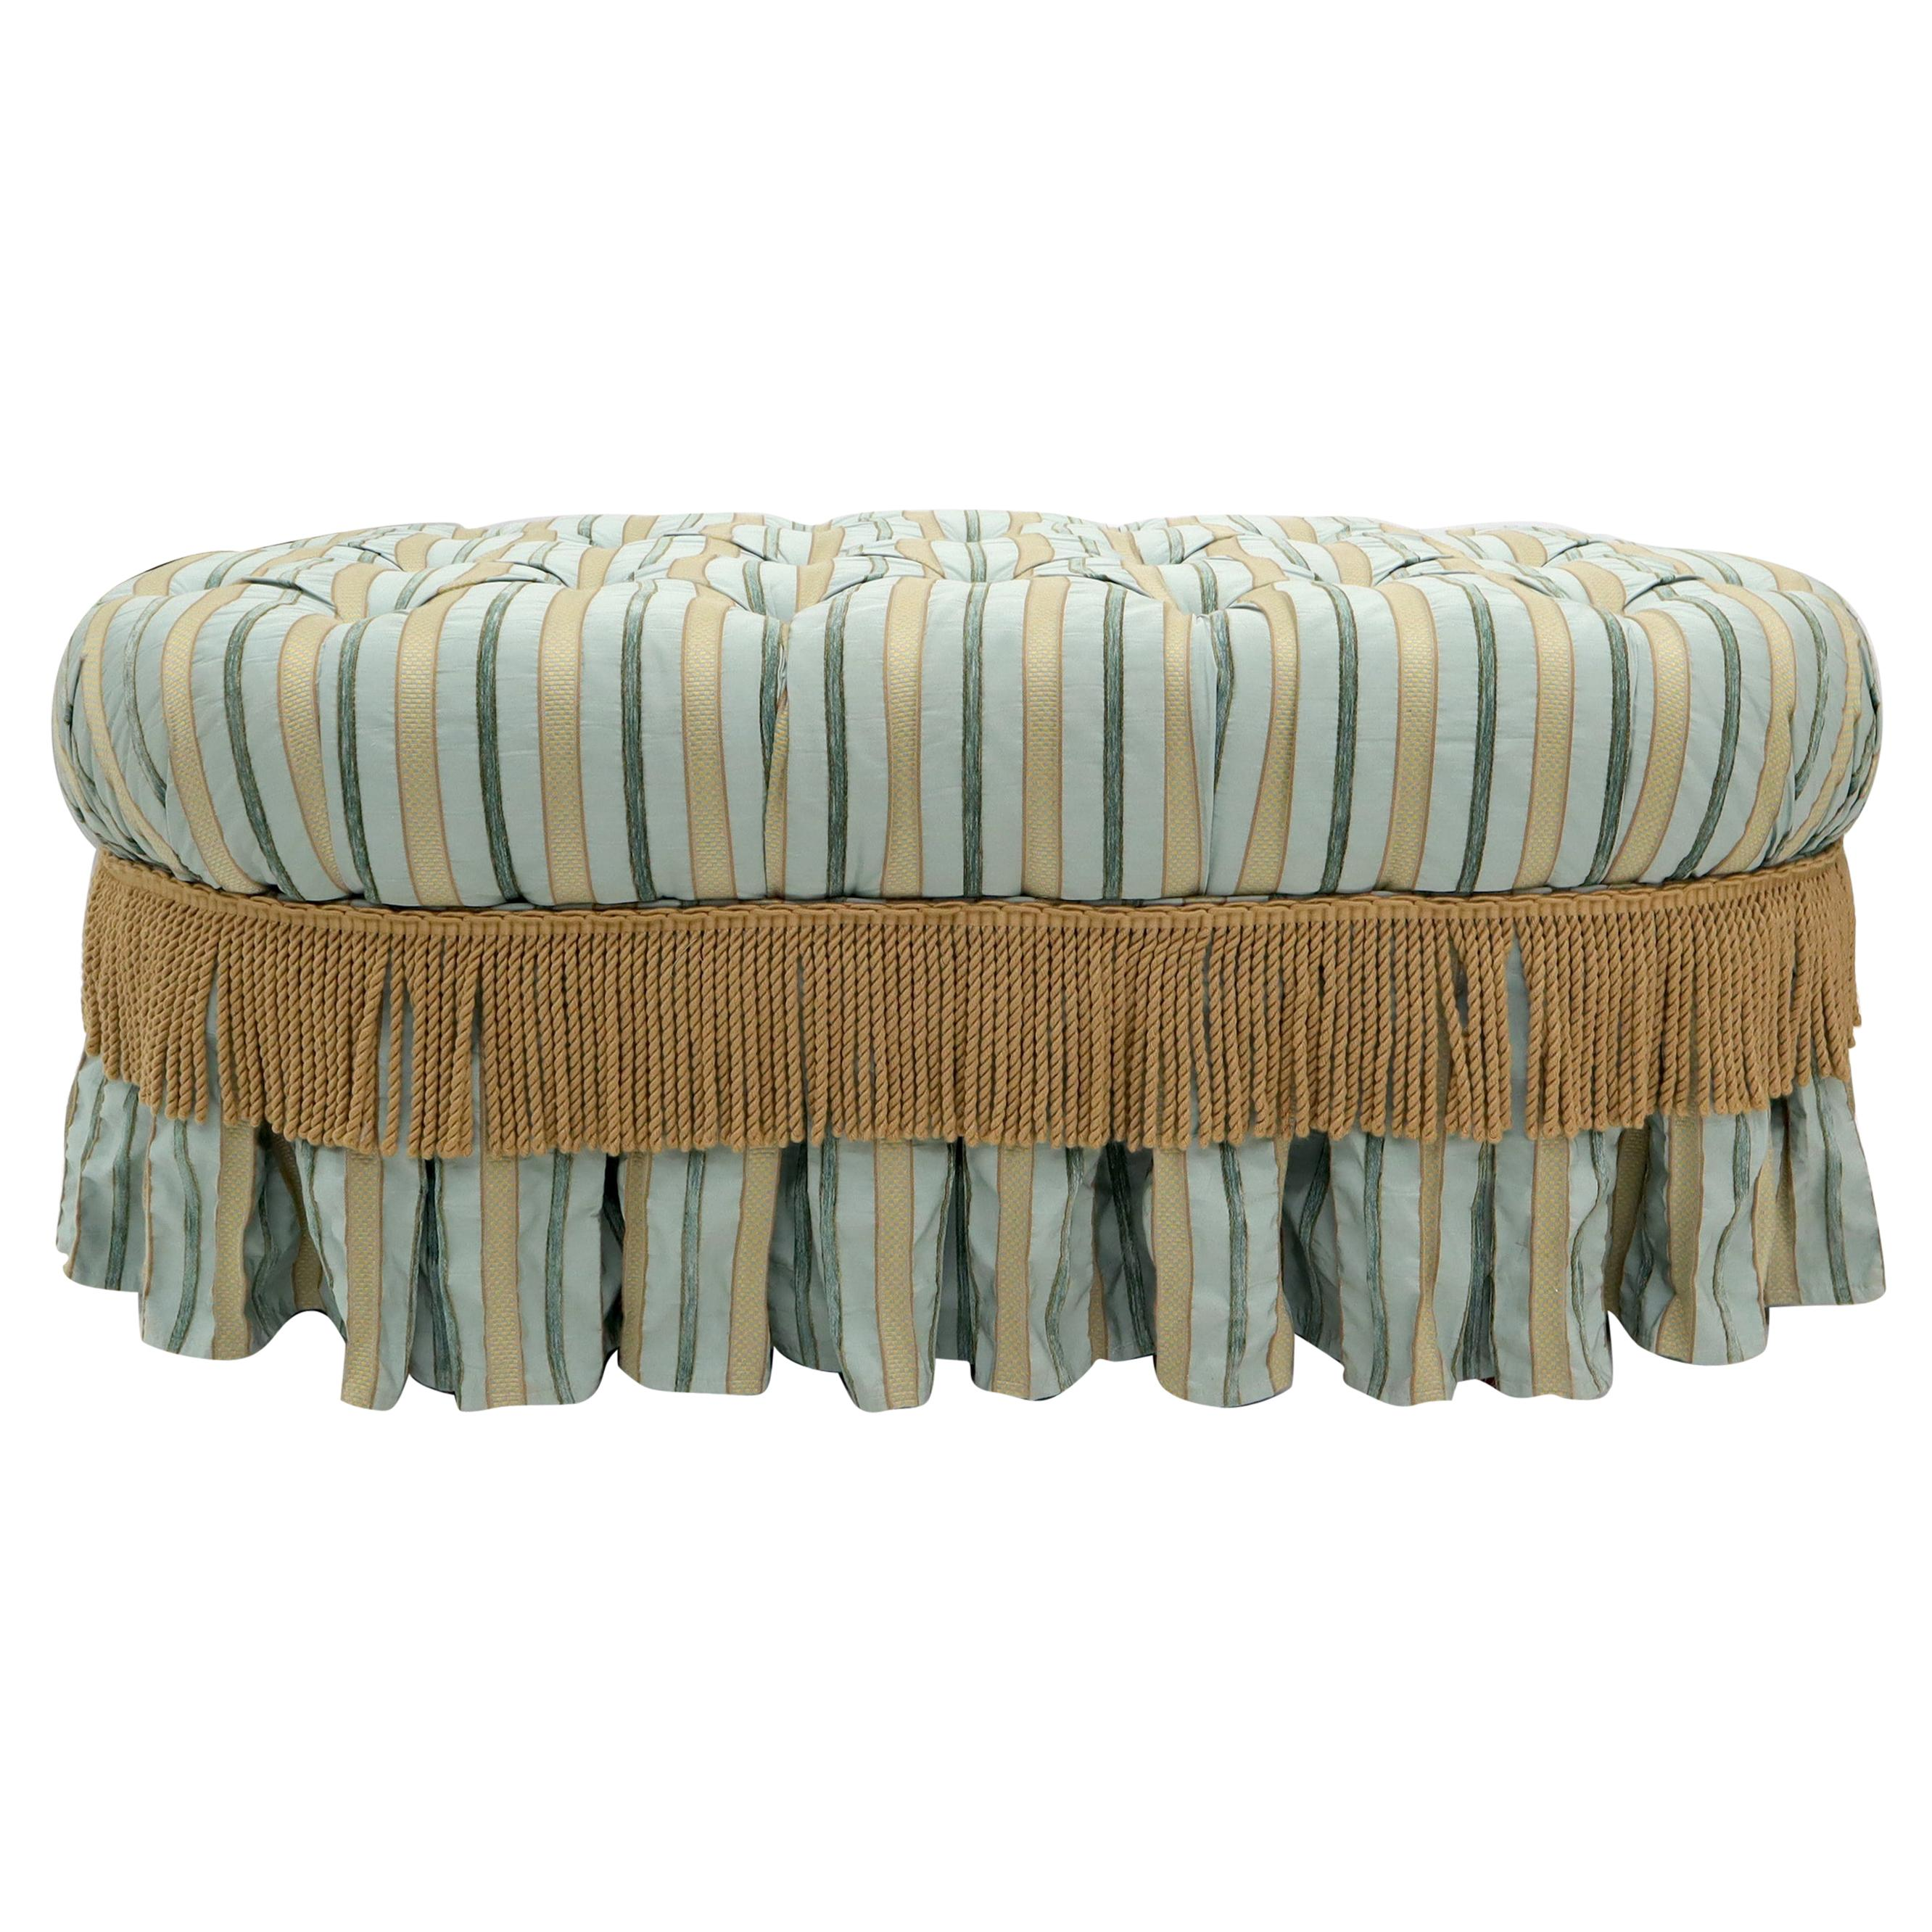 Large Oversize Oval Tufted Upholstery Ottoman Bench